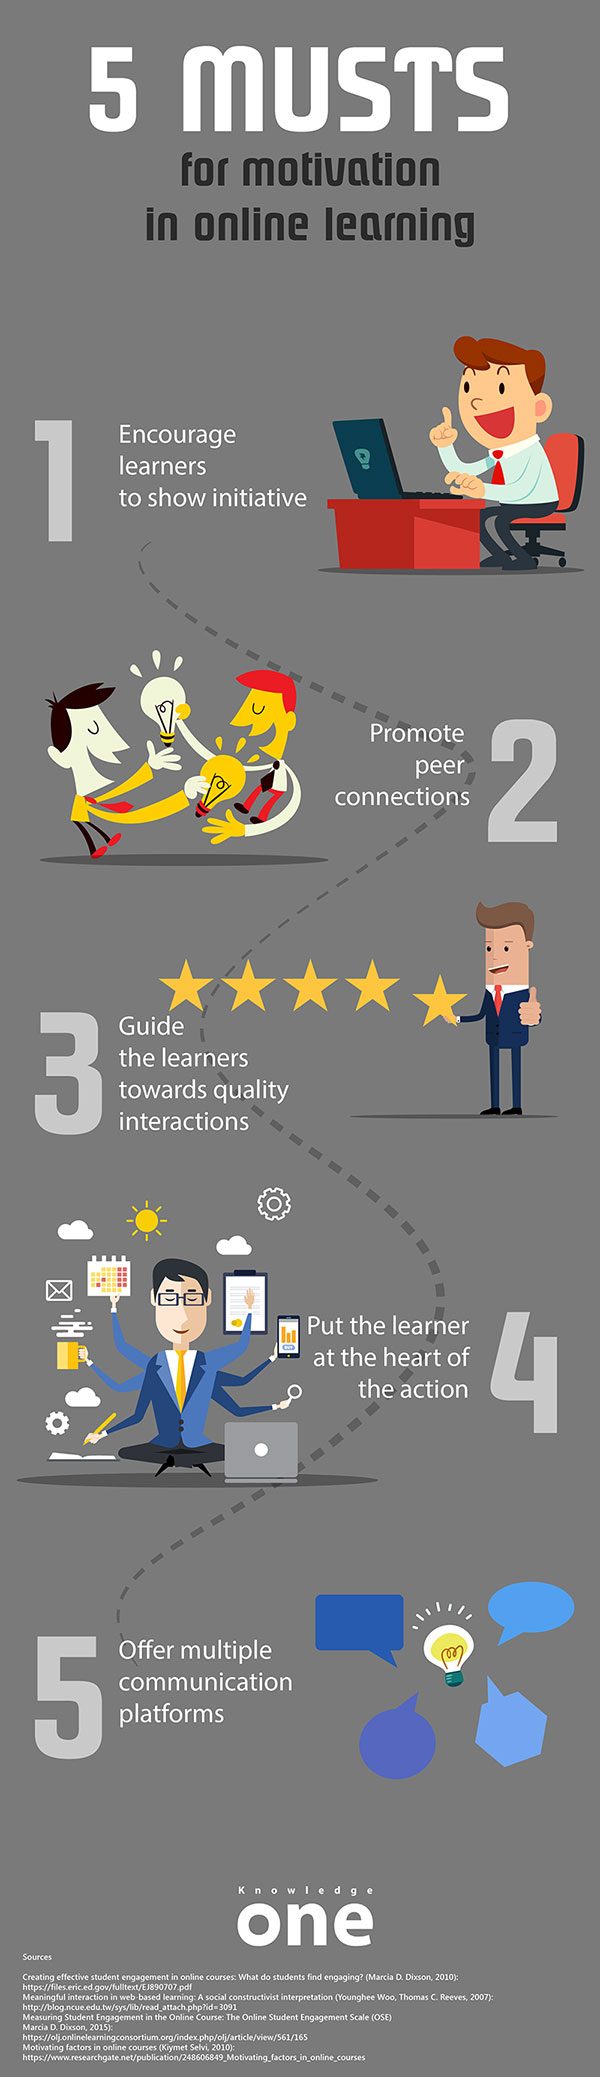 Infographic on learners motivation in online learning